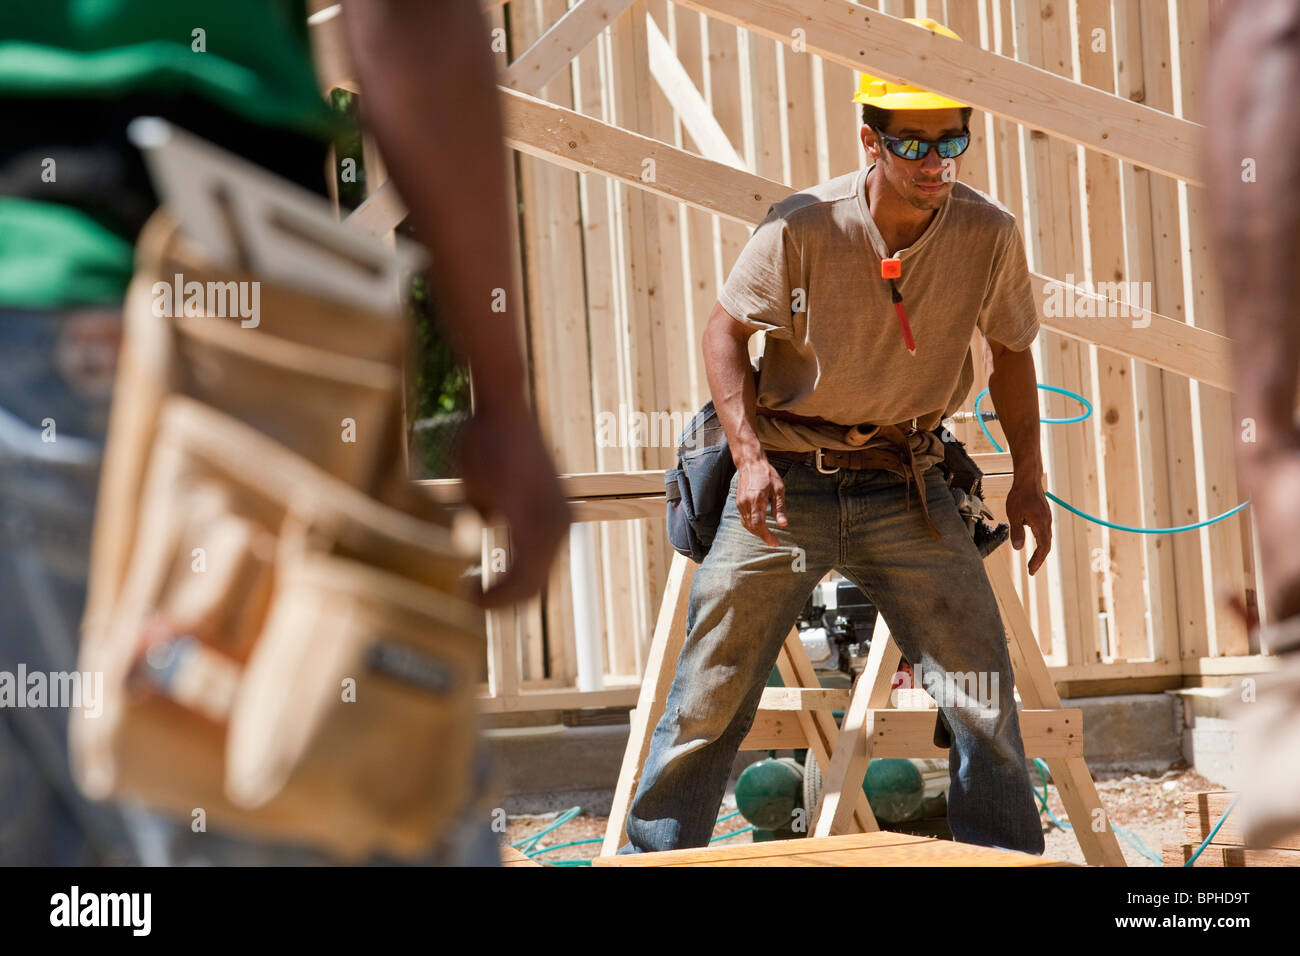 Carpenters working on a framed house - Stock Image